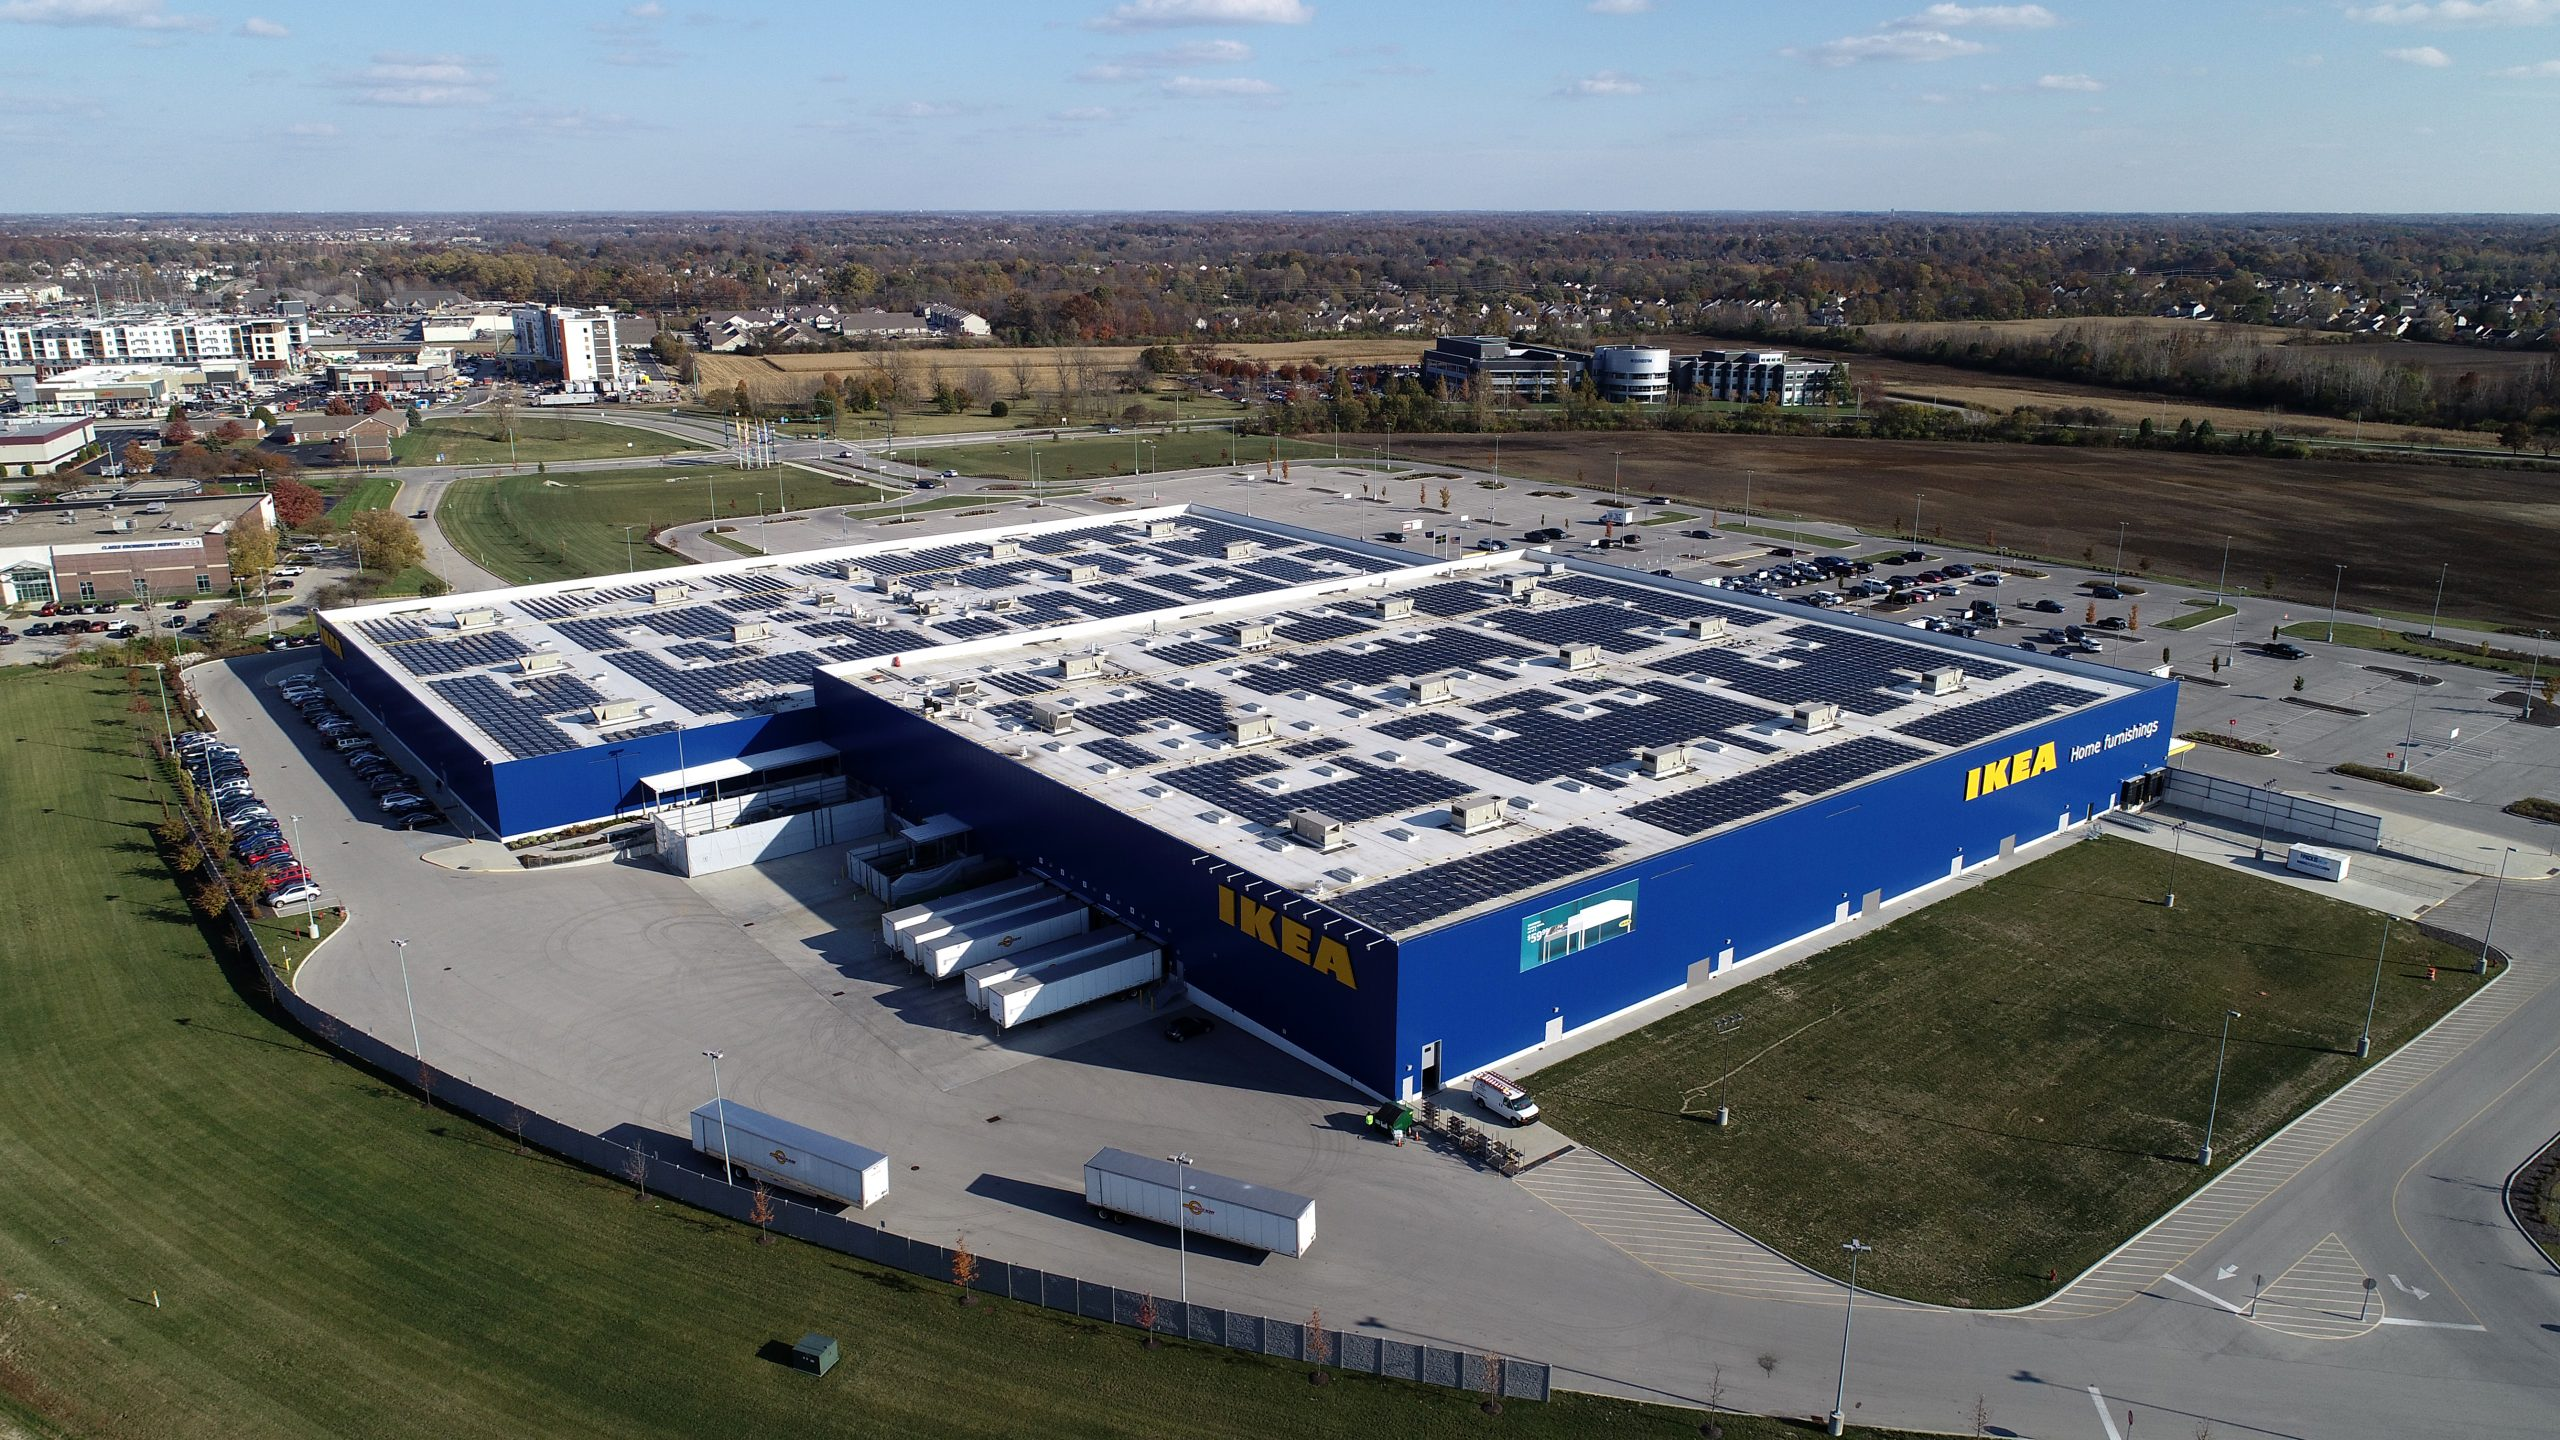 ikea commercial roofing project by ce reeve roofing in indiana